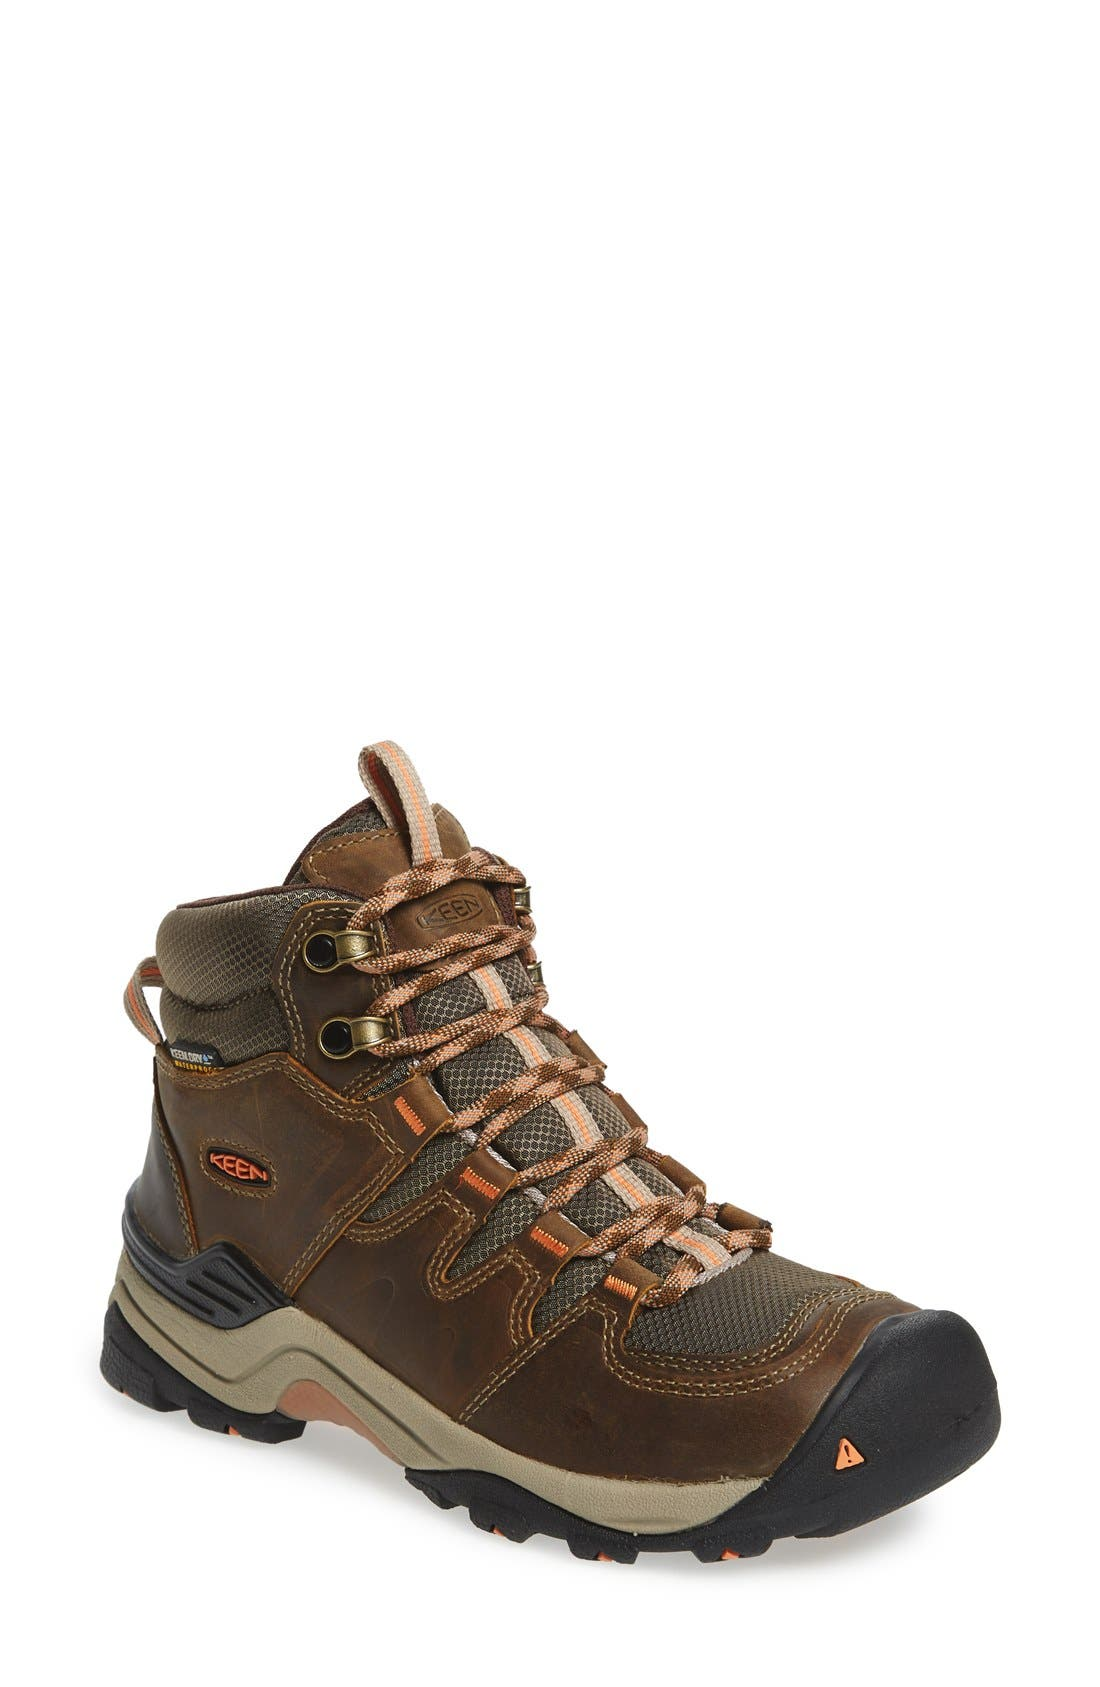 Gypsum II Mid Waterproof Hiking Boot,                             Main thumbnail 1, color,                             Cornstock/ Gold Coral